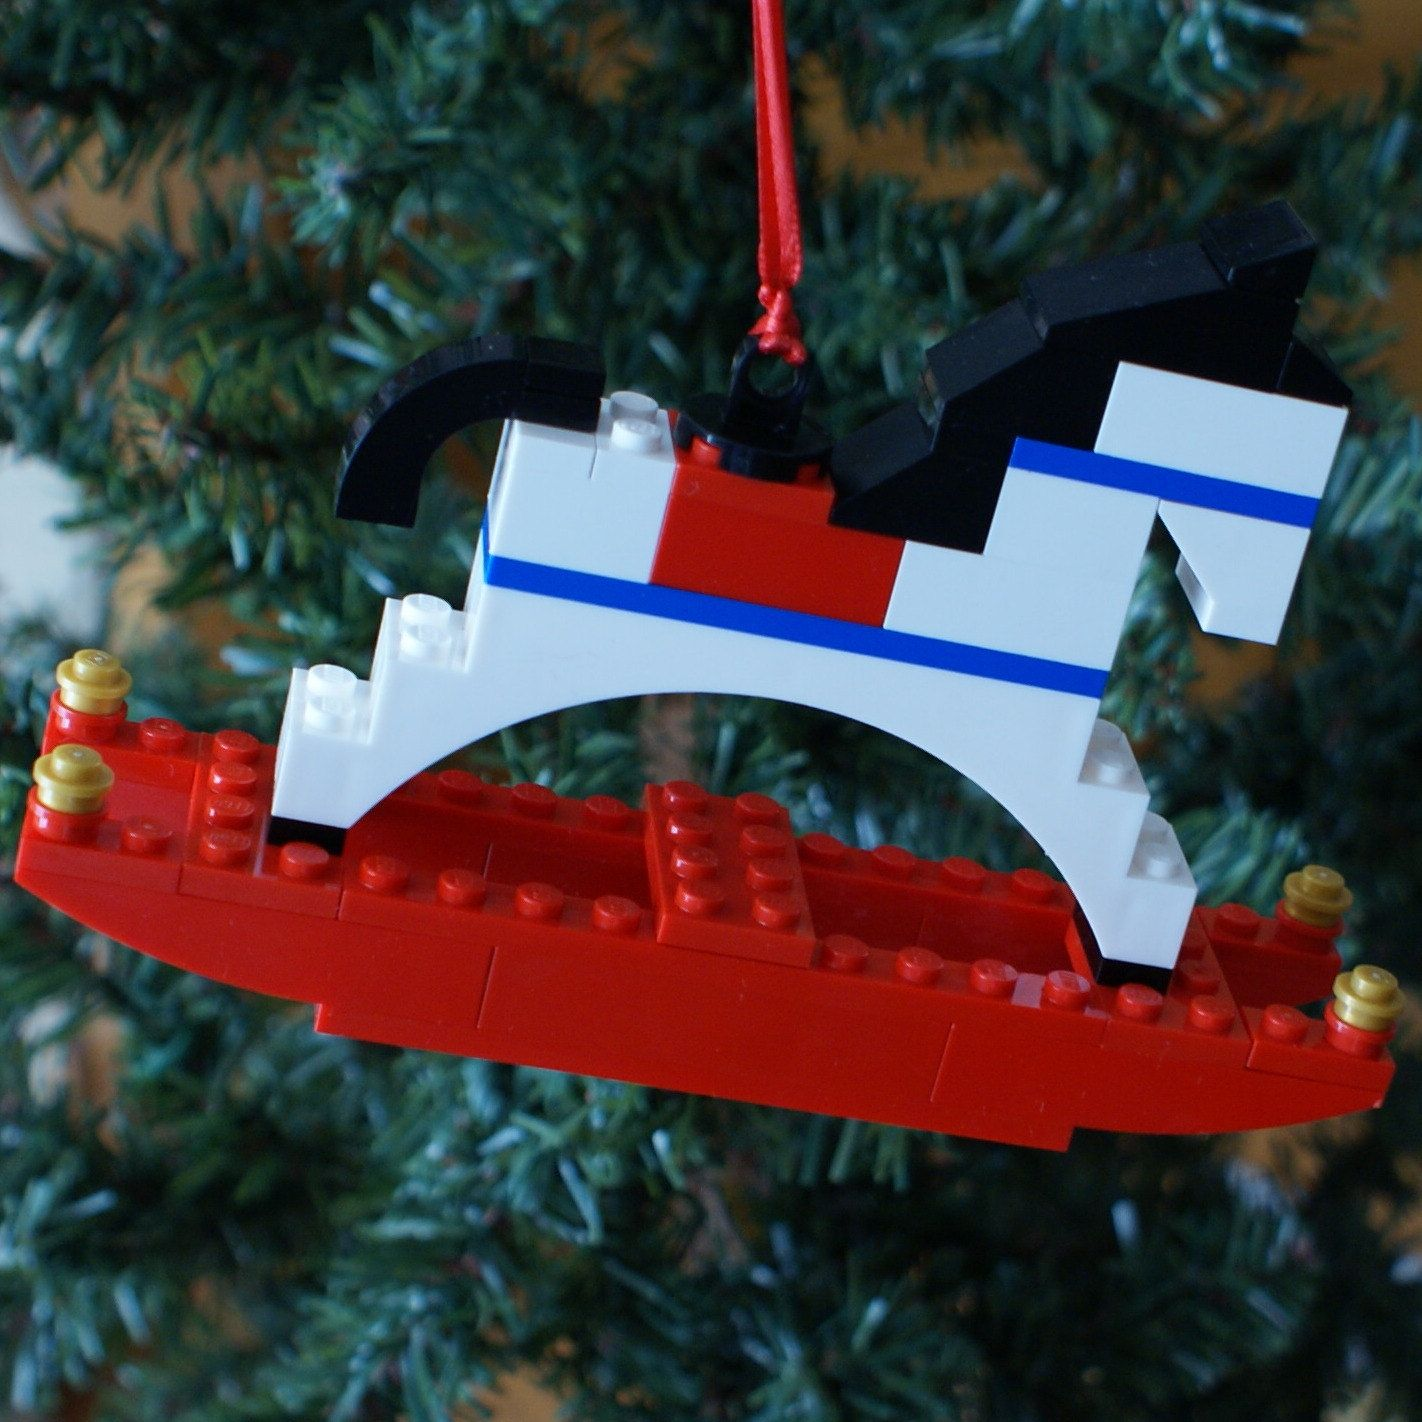 LEGO Rocking Horse Christmas Ornament By Ornaments4charity